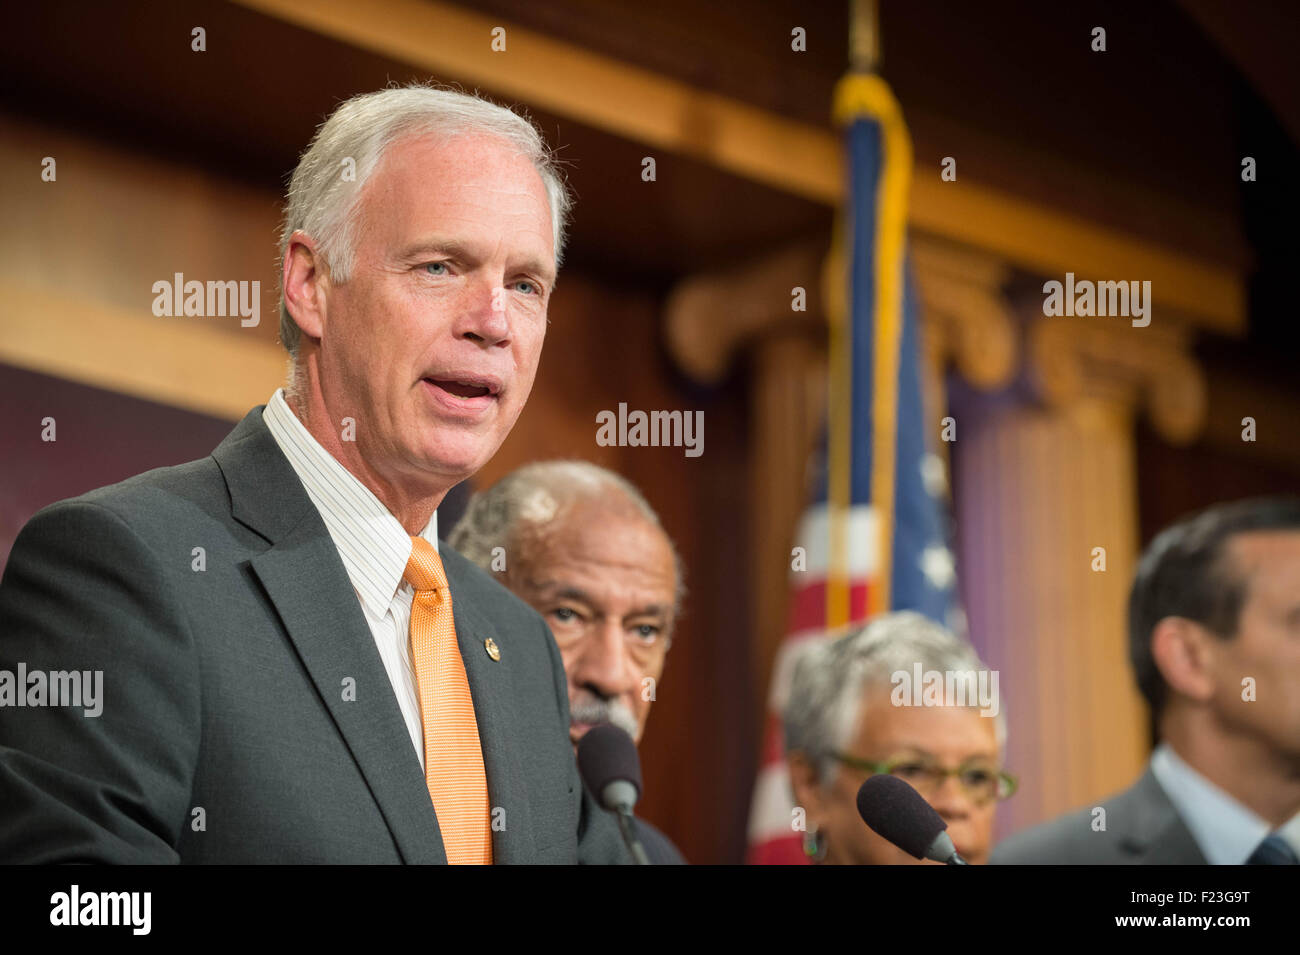 Washington DC, USA. 10th September, 2015. U.S. Senator Ron Johnson joins a bipartisan group of legislators to introduce - Stock Image